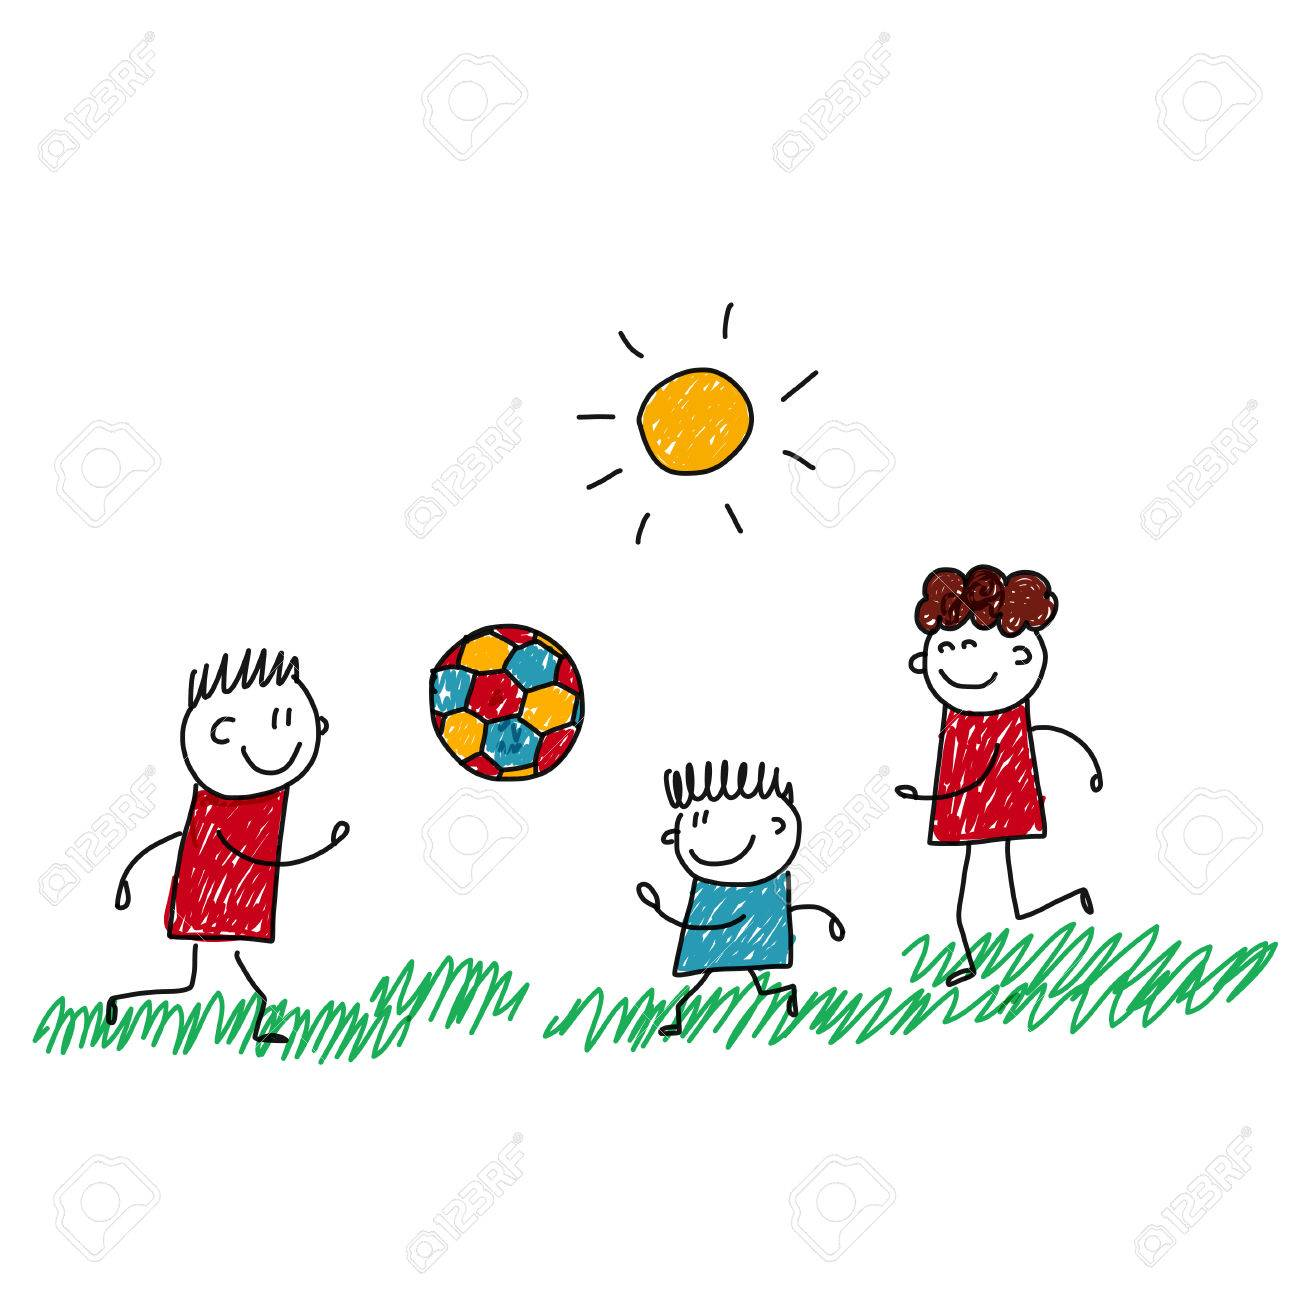 Image Of Happy Kids Playing Football Kids Drawing Royalty Free Cliparts Vectors And Stock Illustration Image 48793189